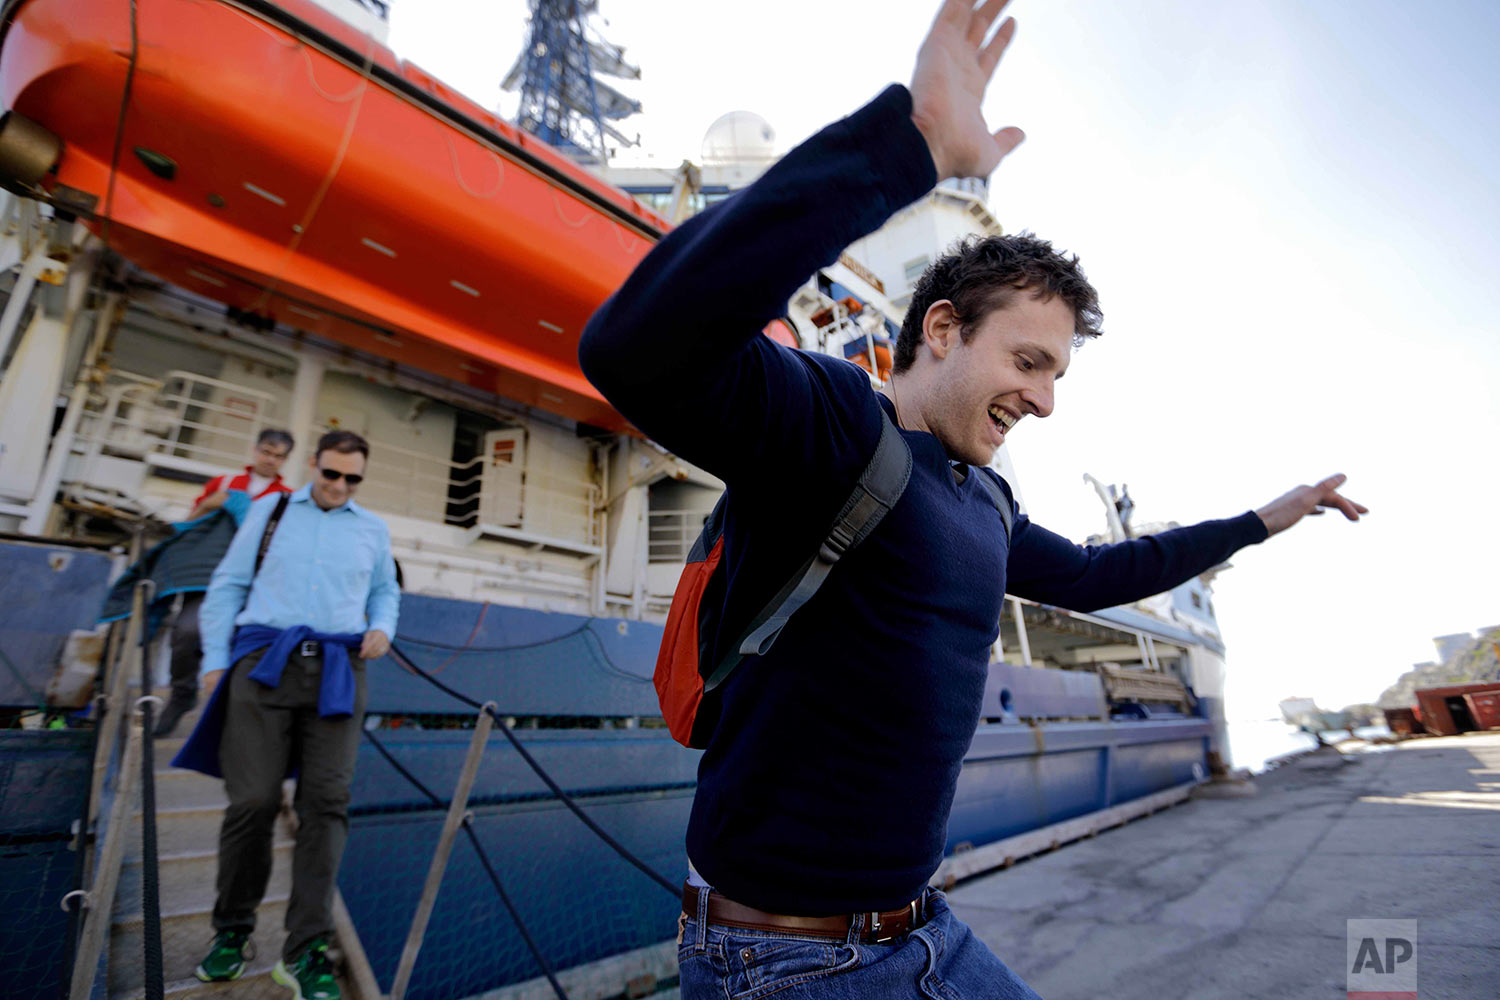 Researcher Scott Joblin jumps onto land for the first time since setting sail aboard the Finnish icebreaker MSV Nordica as it arrives into Nuuk, Greenland, after traversing the Northwest Passage through the Canadian Arctic Archipelago, Saturday, July 29, 2017. After 24 days at sea and a journey spanning more than 10,000 kilometers (6,214 miles), the MSV Nordica has set a new record for the earliest transit of the fabled Northwest Passage. The once-forbidding route through the Arctic, linking the Pacific and the Atlantic oceans, has been opening up sooner and for a longer period each summer due to climate change. (AP Photo/David Goldman)